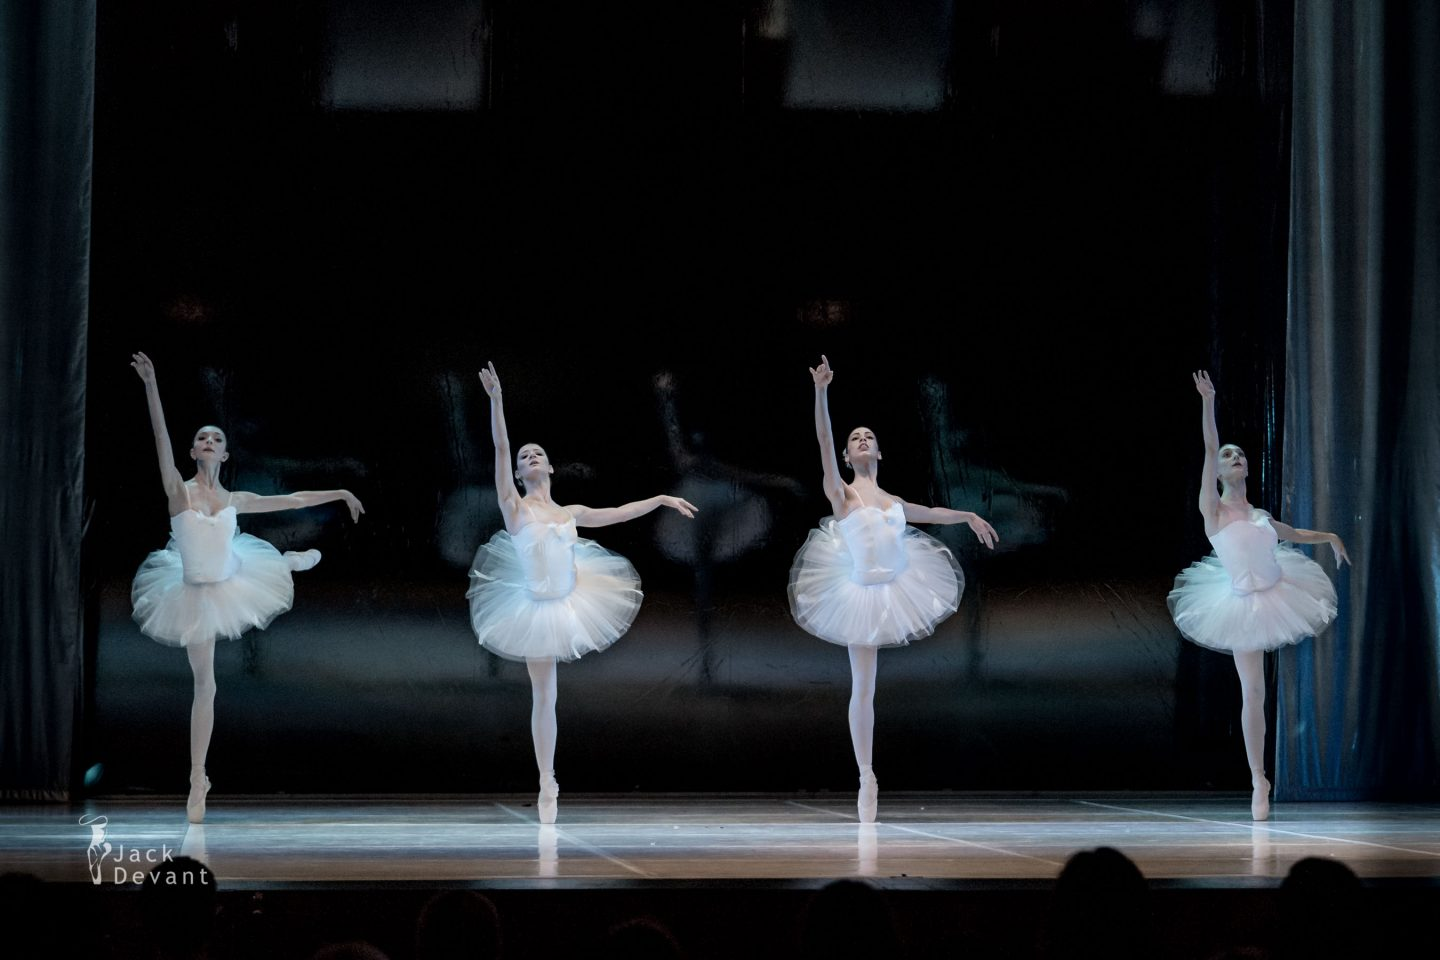 Swan Lake - Lisa Bottet, Giordana Roberto, Angelica Gismondo and Marta Orsi as four Swans